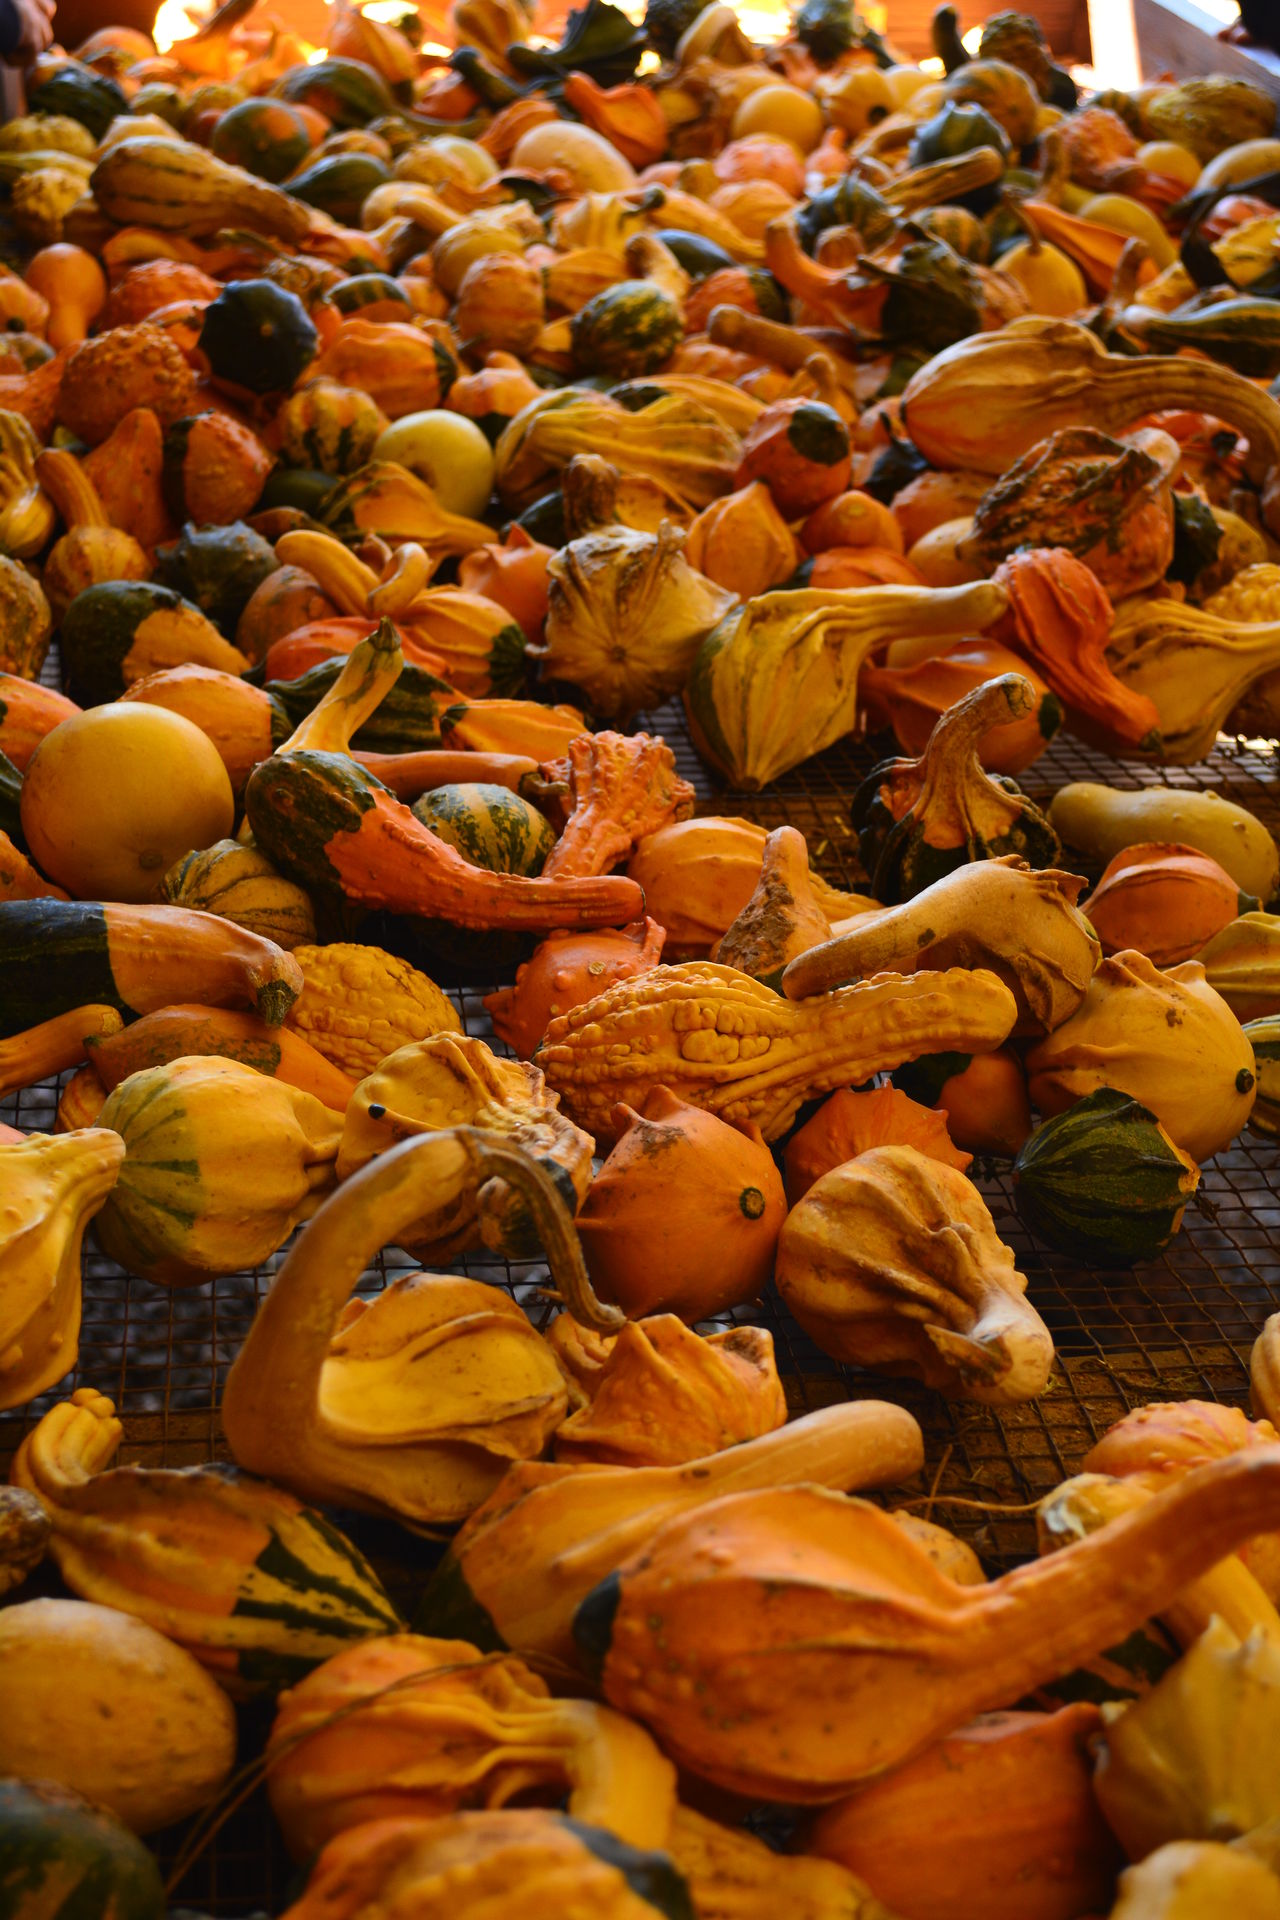 Abundance Autumn Backgrounds Close-up Day Dried Fruit Food Freshness Full Frame Healthy Eating Large Group Of Objects Market No People Orange Color Outdoors Pumpkin Vegetable